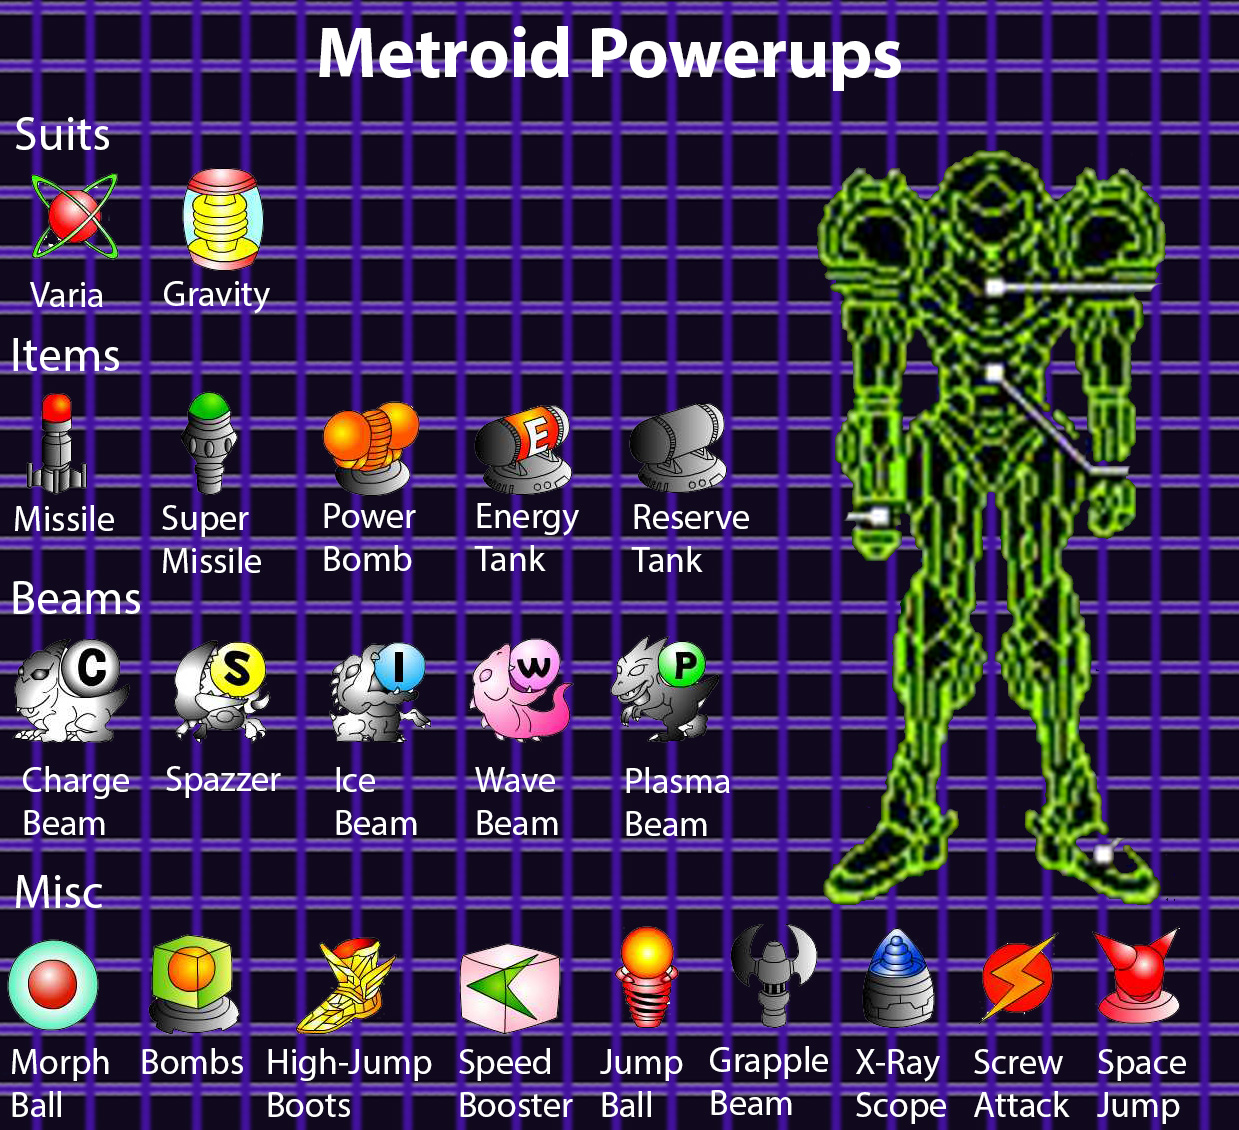 Super Metroid powerups (traced) by slicksnivy on DeviantArt